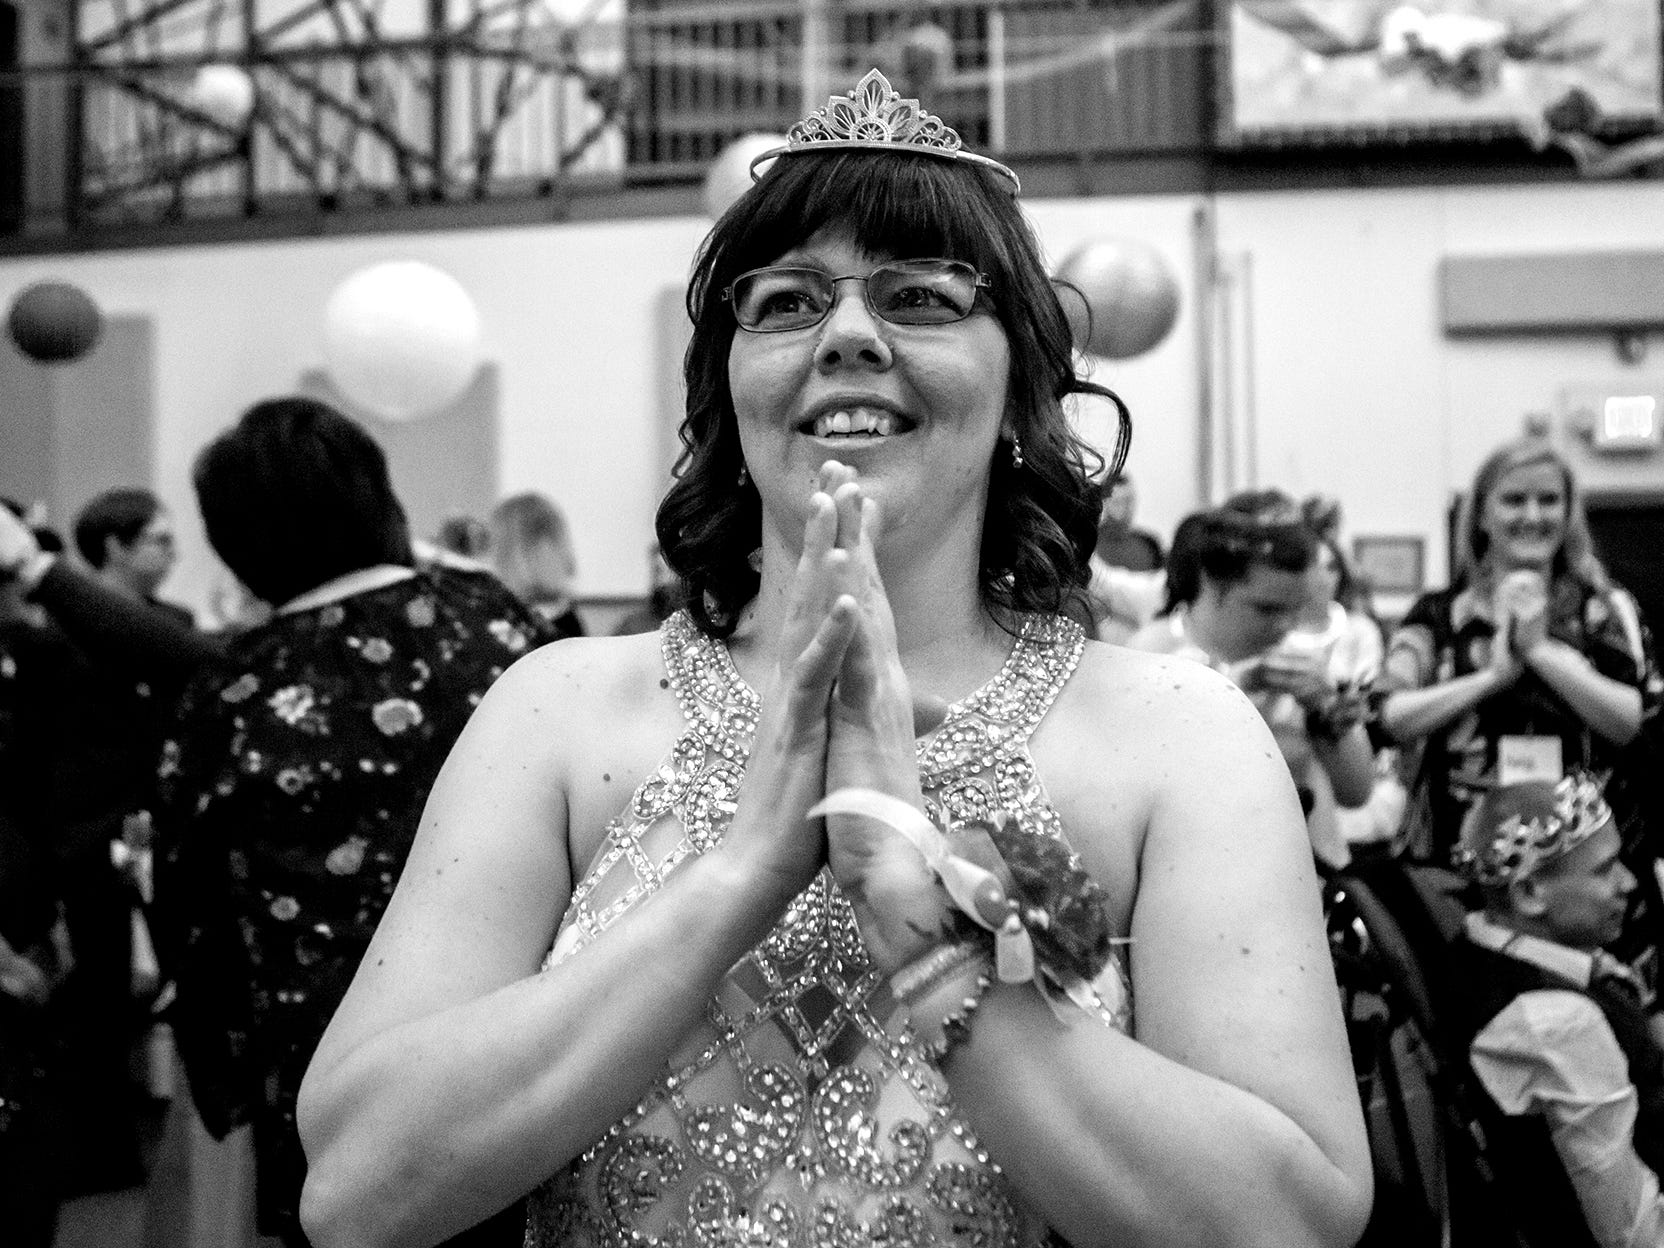 Heather Showman clasps her hands together after she, and every other guest at a Night to Shine were crowned prom king and queens. The dance which happens in churches across the world on the same night honors those with special needs by giving them a night they will always remember.